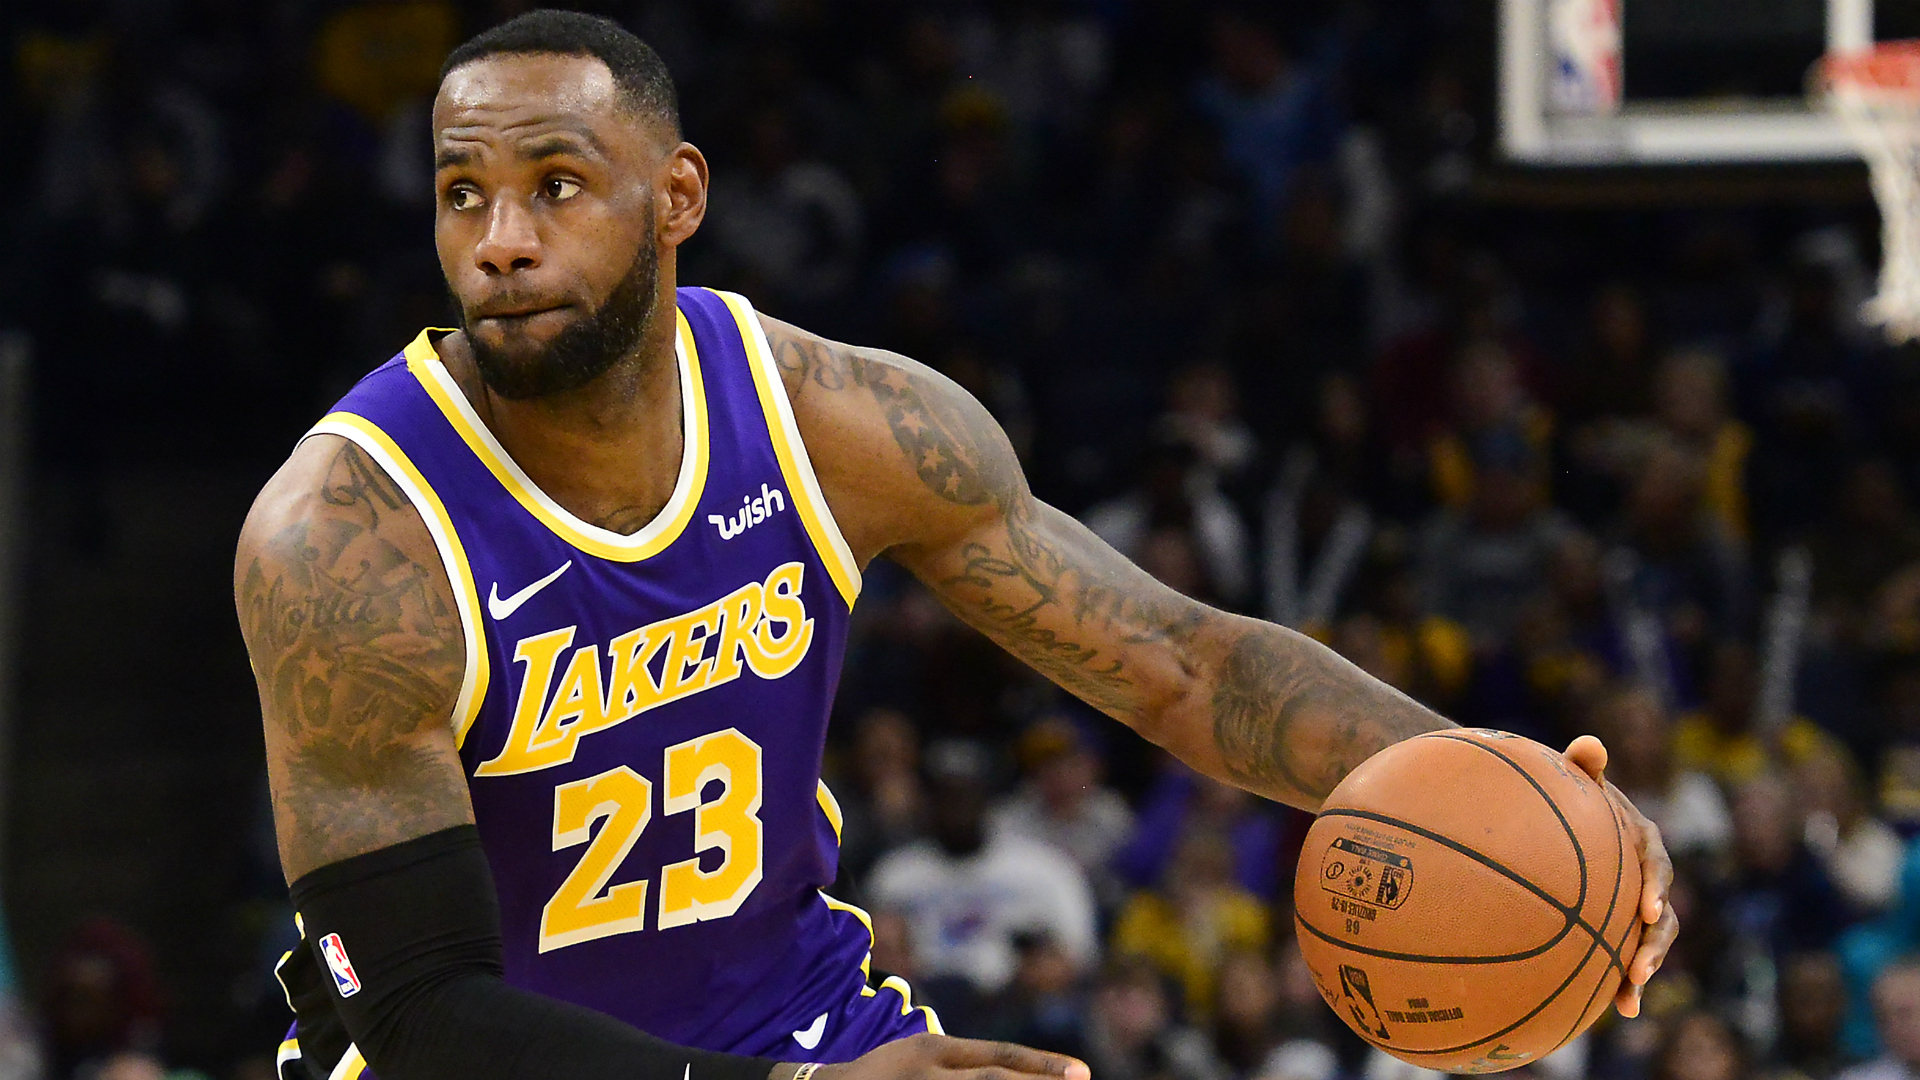 Lakers' LeBron & Bucks star Giannis dominate, Spurs stop skid